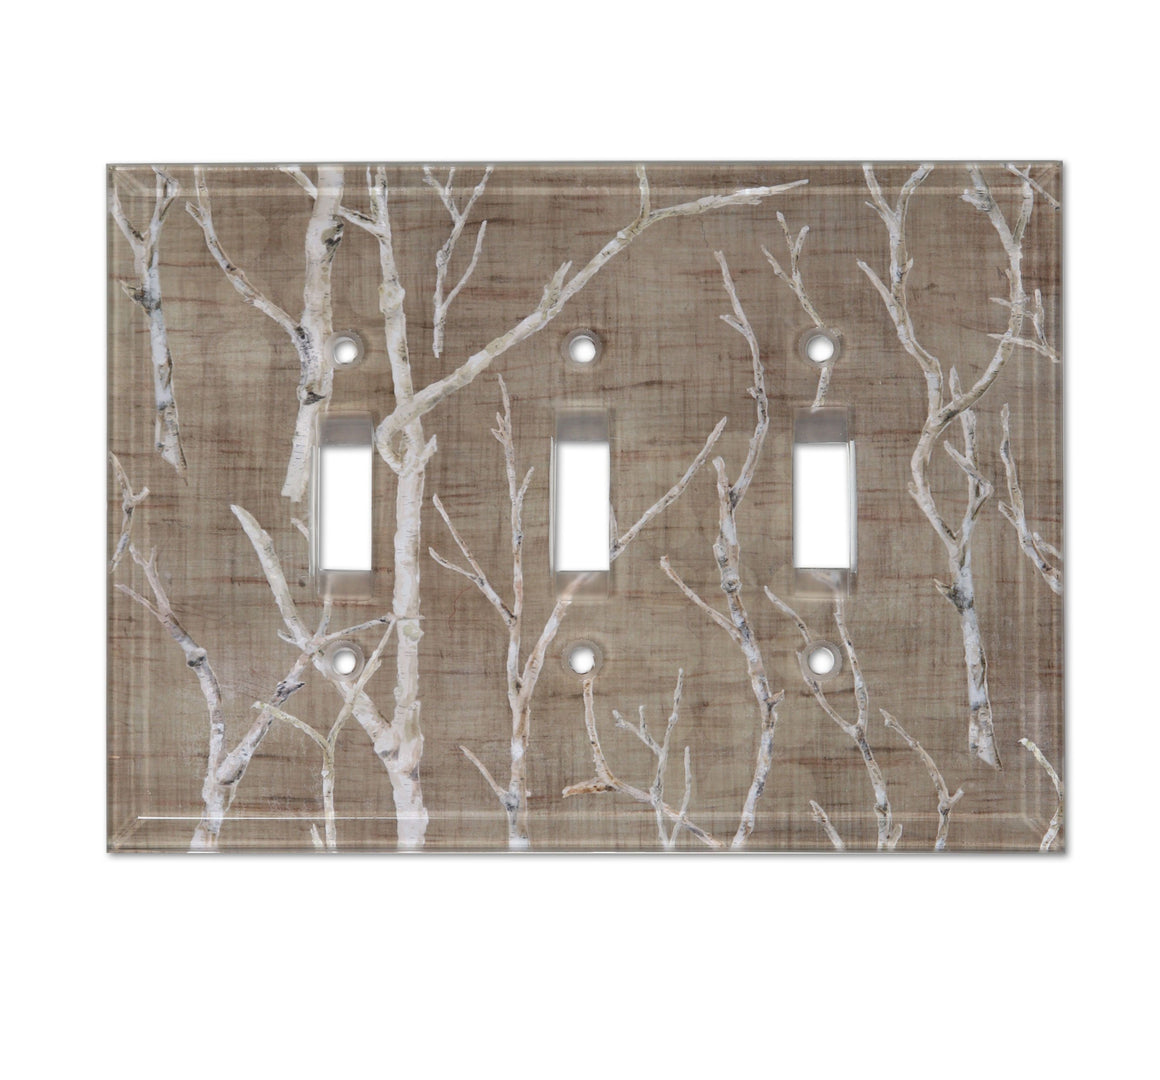 Triple Glass Switchplate in Twigs